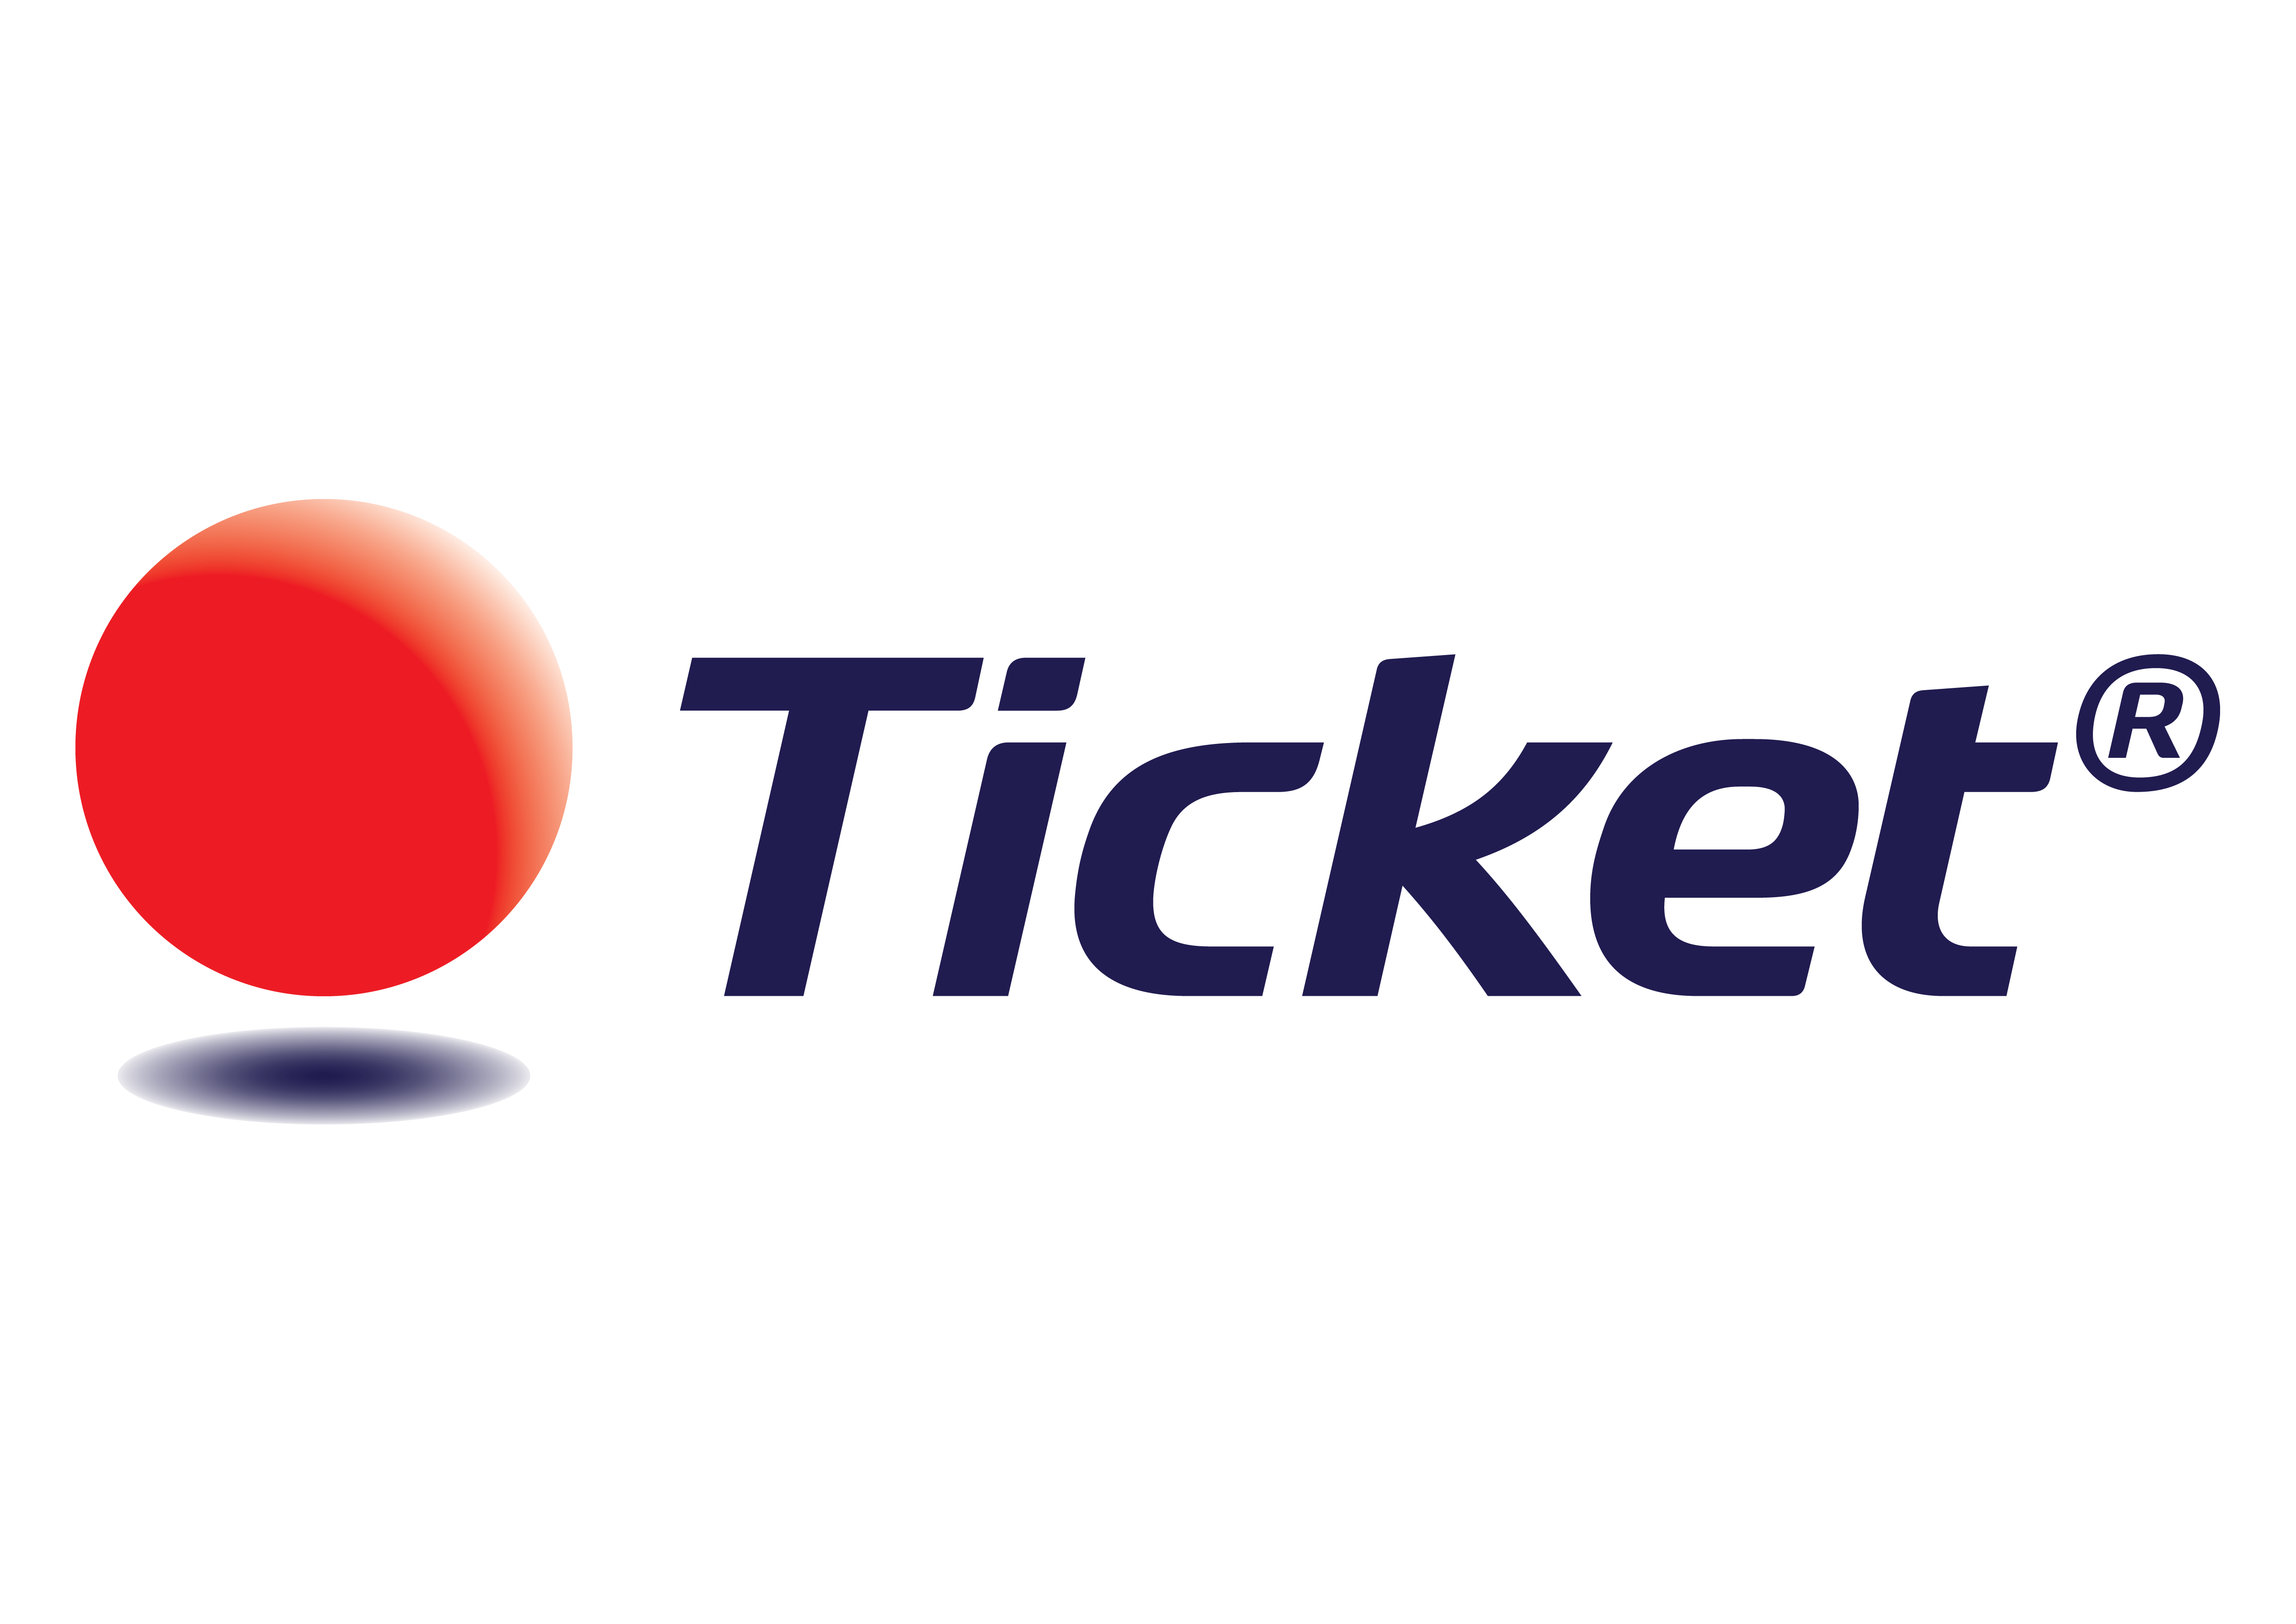 Sunday ticket logo png. Logos